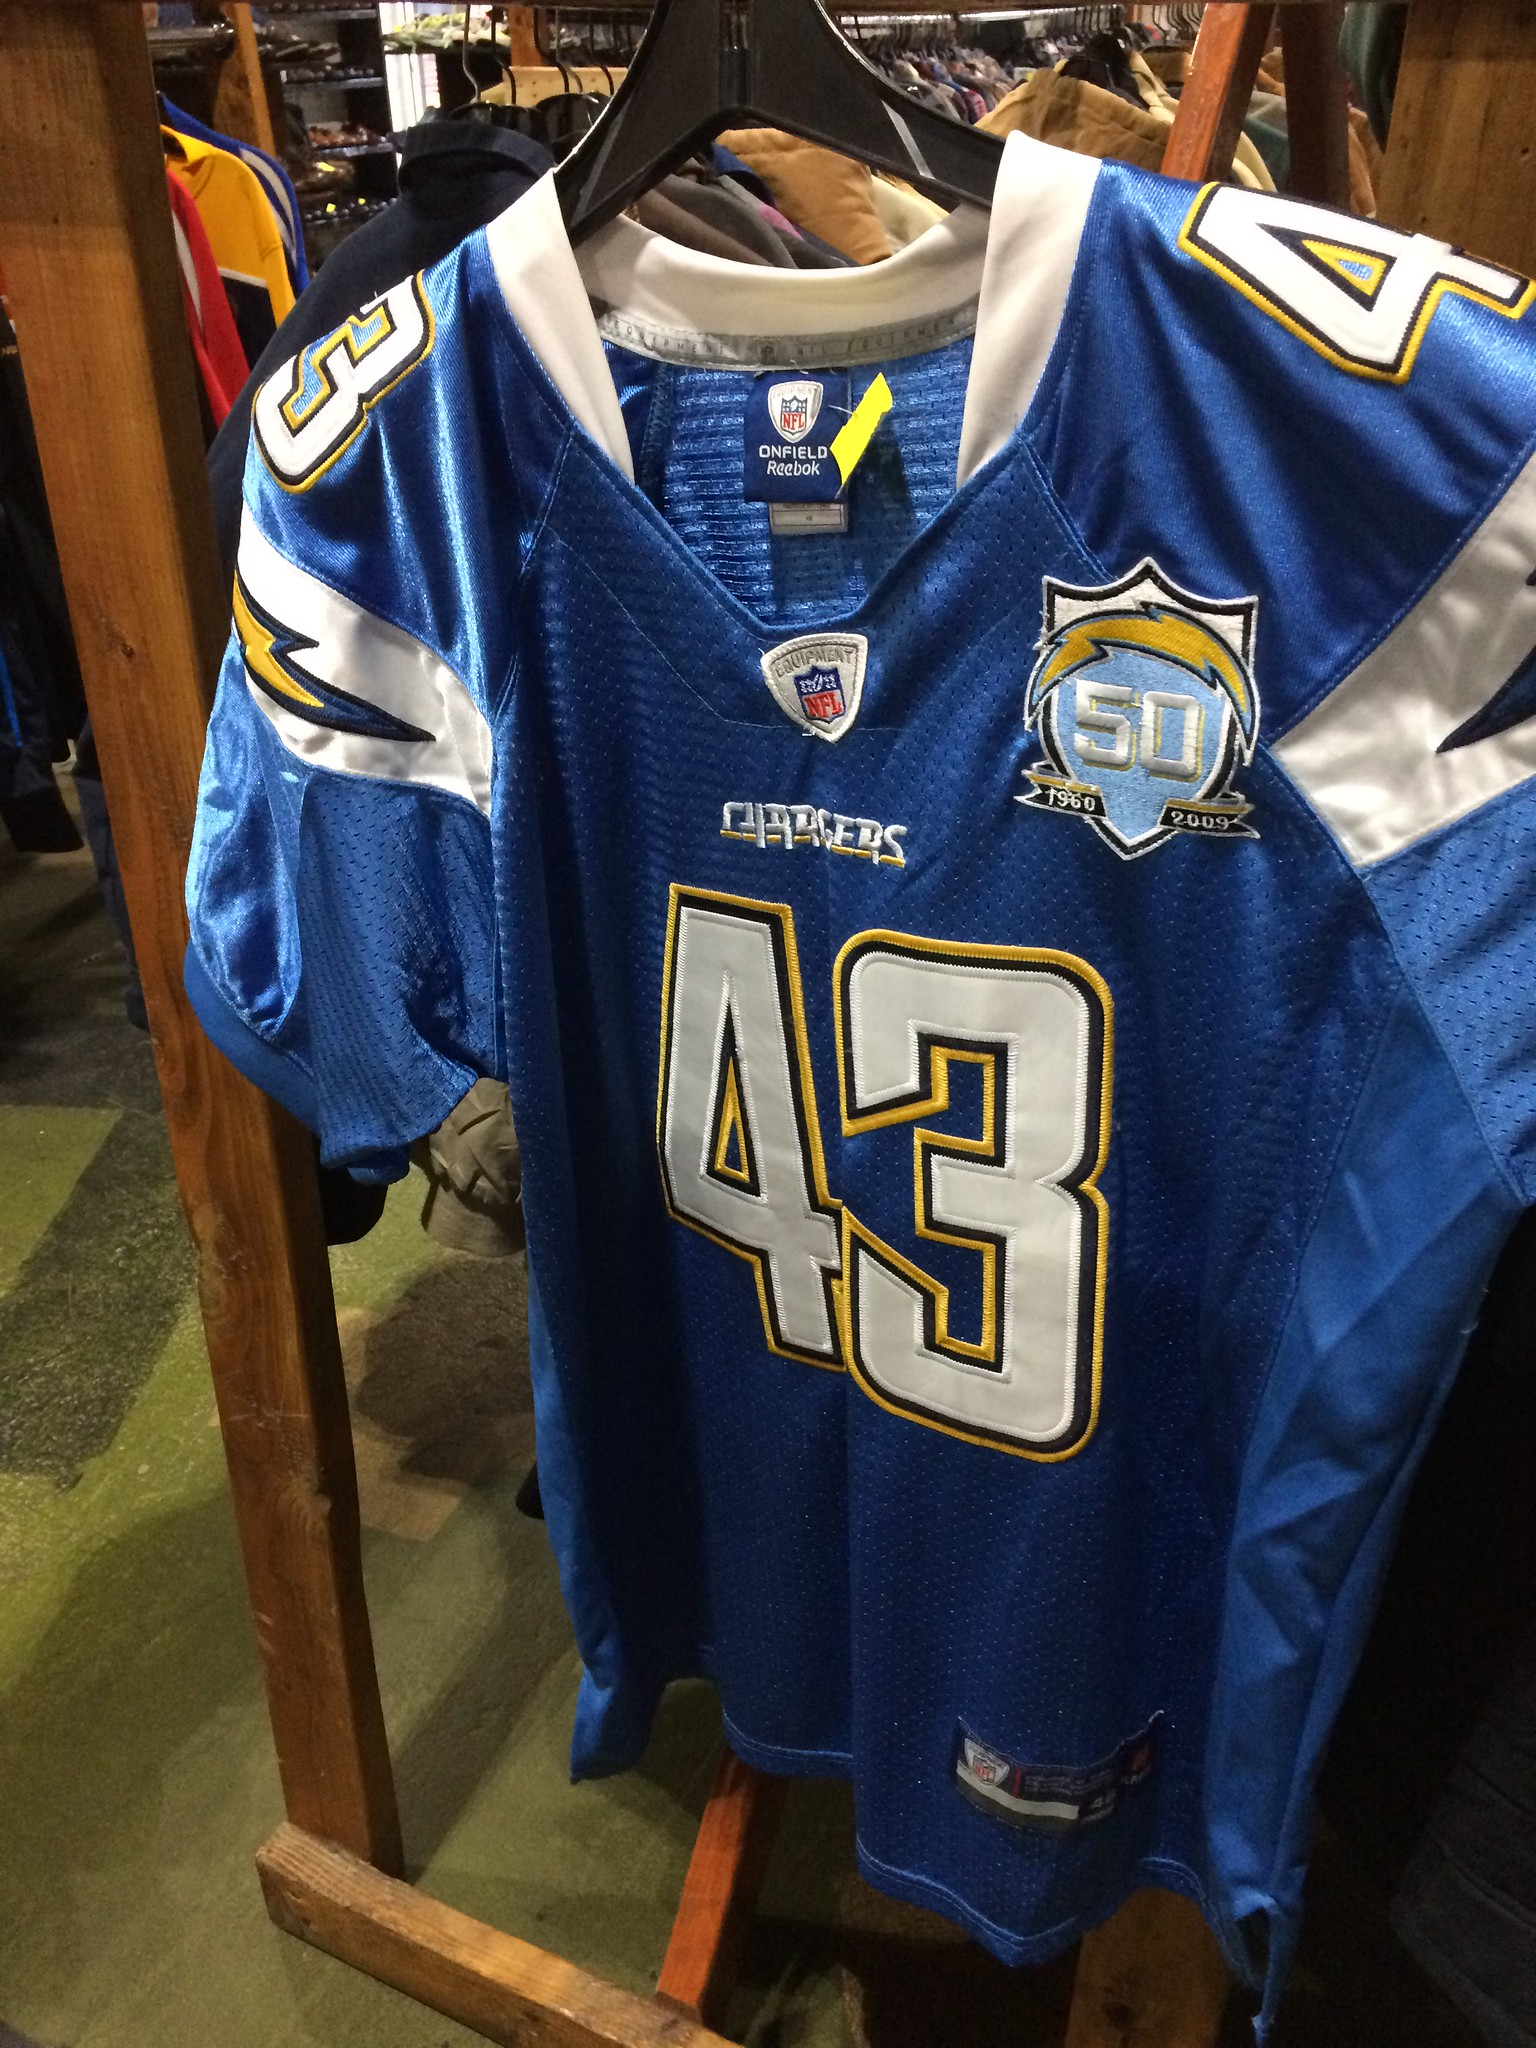 Nike mexico jersey 2017 one pen one page -  Currently Has What Appears To Be An Authentic 2009 Darren Sproles Chargers Jersey Complete With The 50th Season Patch For All Of These Photos